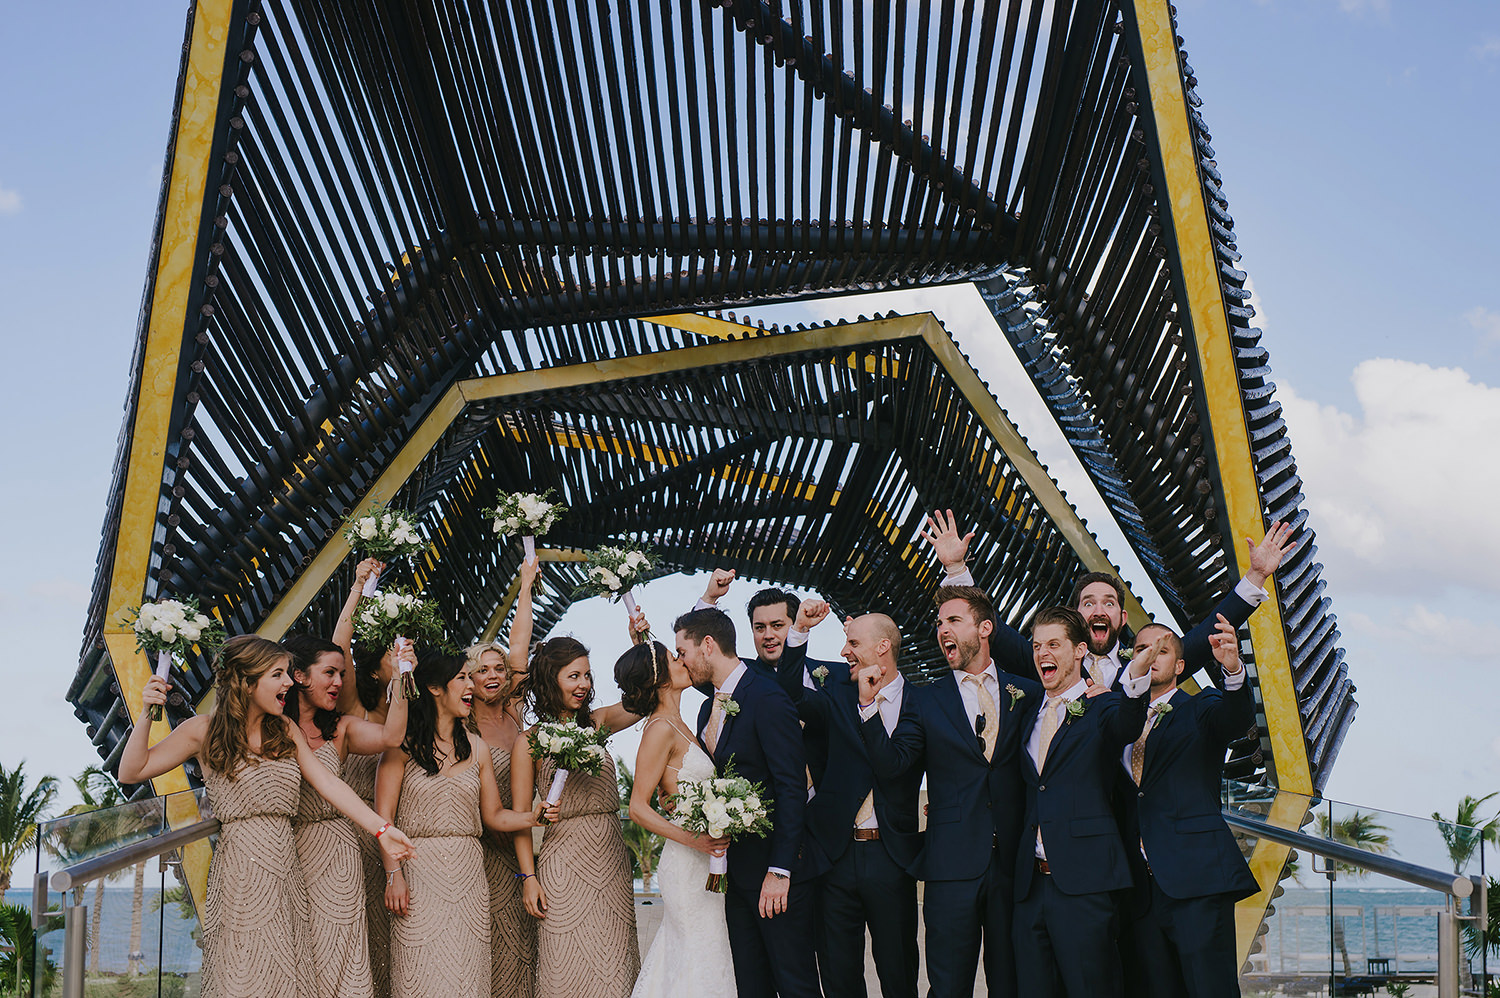 CherylReed_Wedding_Kape_Photography_WeddingPhotography_Mexico_Boda_Fotografia_Royalton_Hideway_Cancun_RivieraMaya_PlayadelCarmen_Beach_398FB_BLOG.jpg